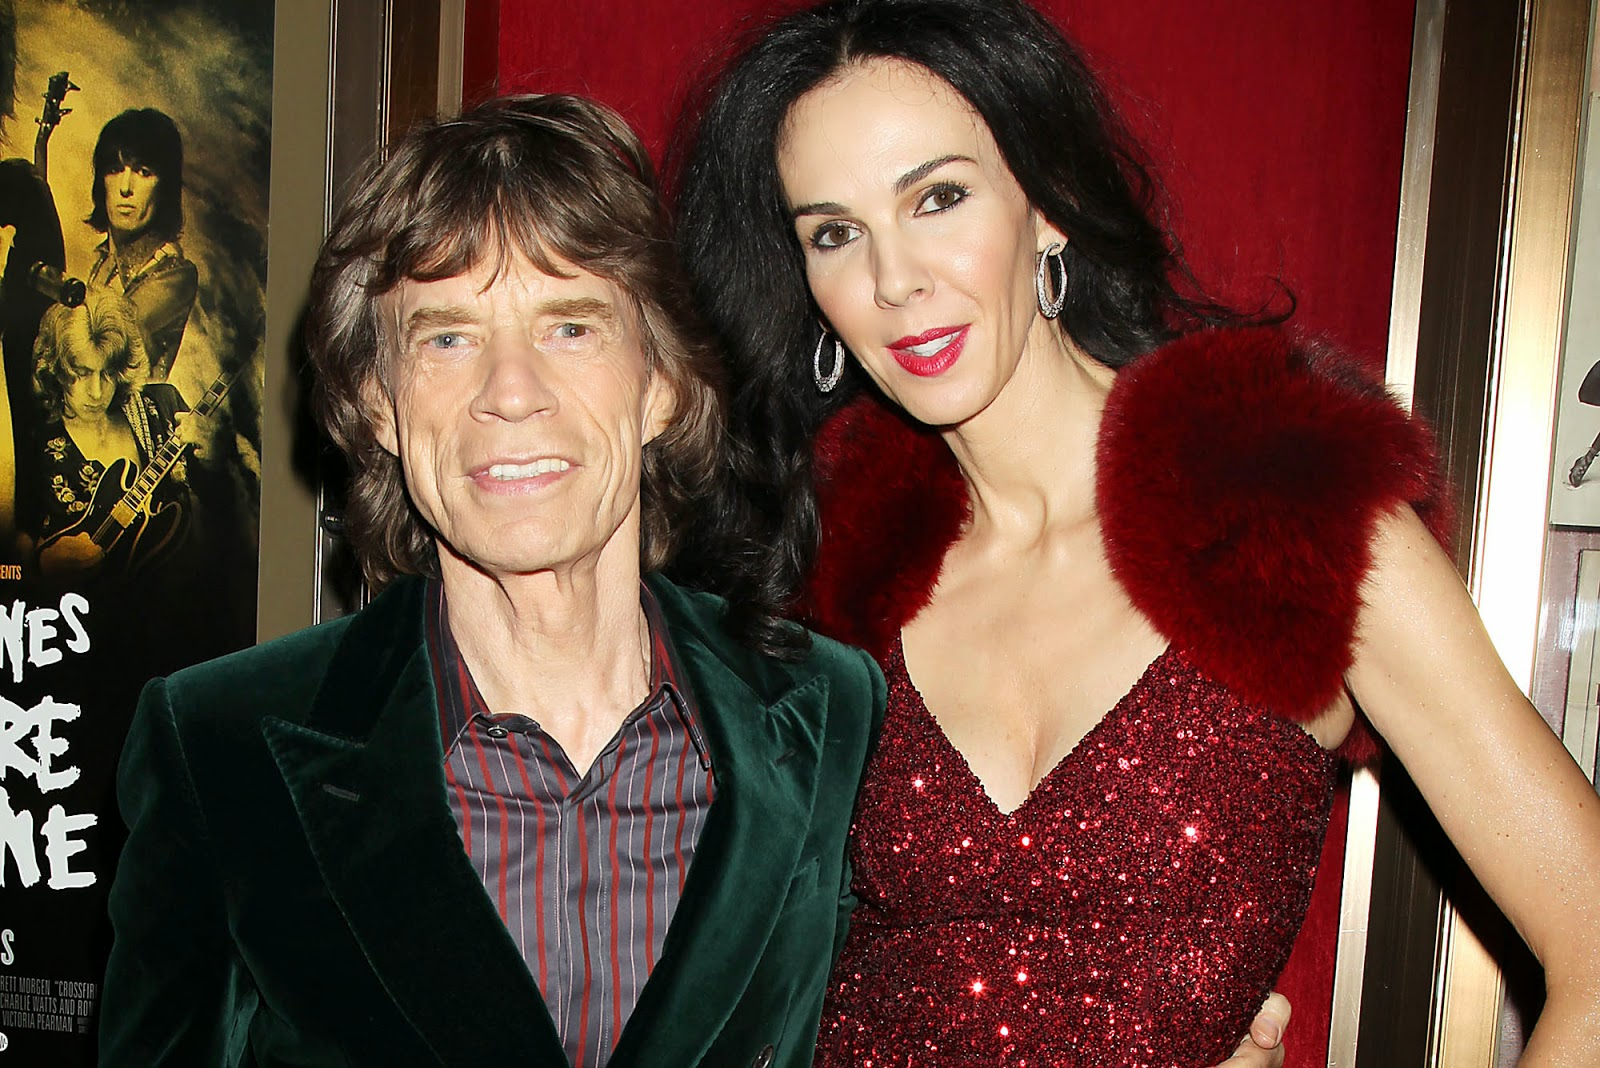 Mick Jagger Sings Sad Song